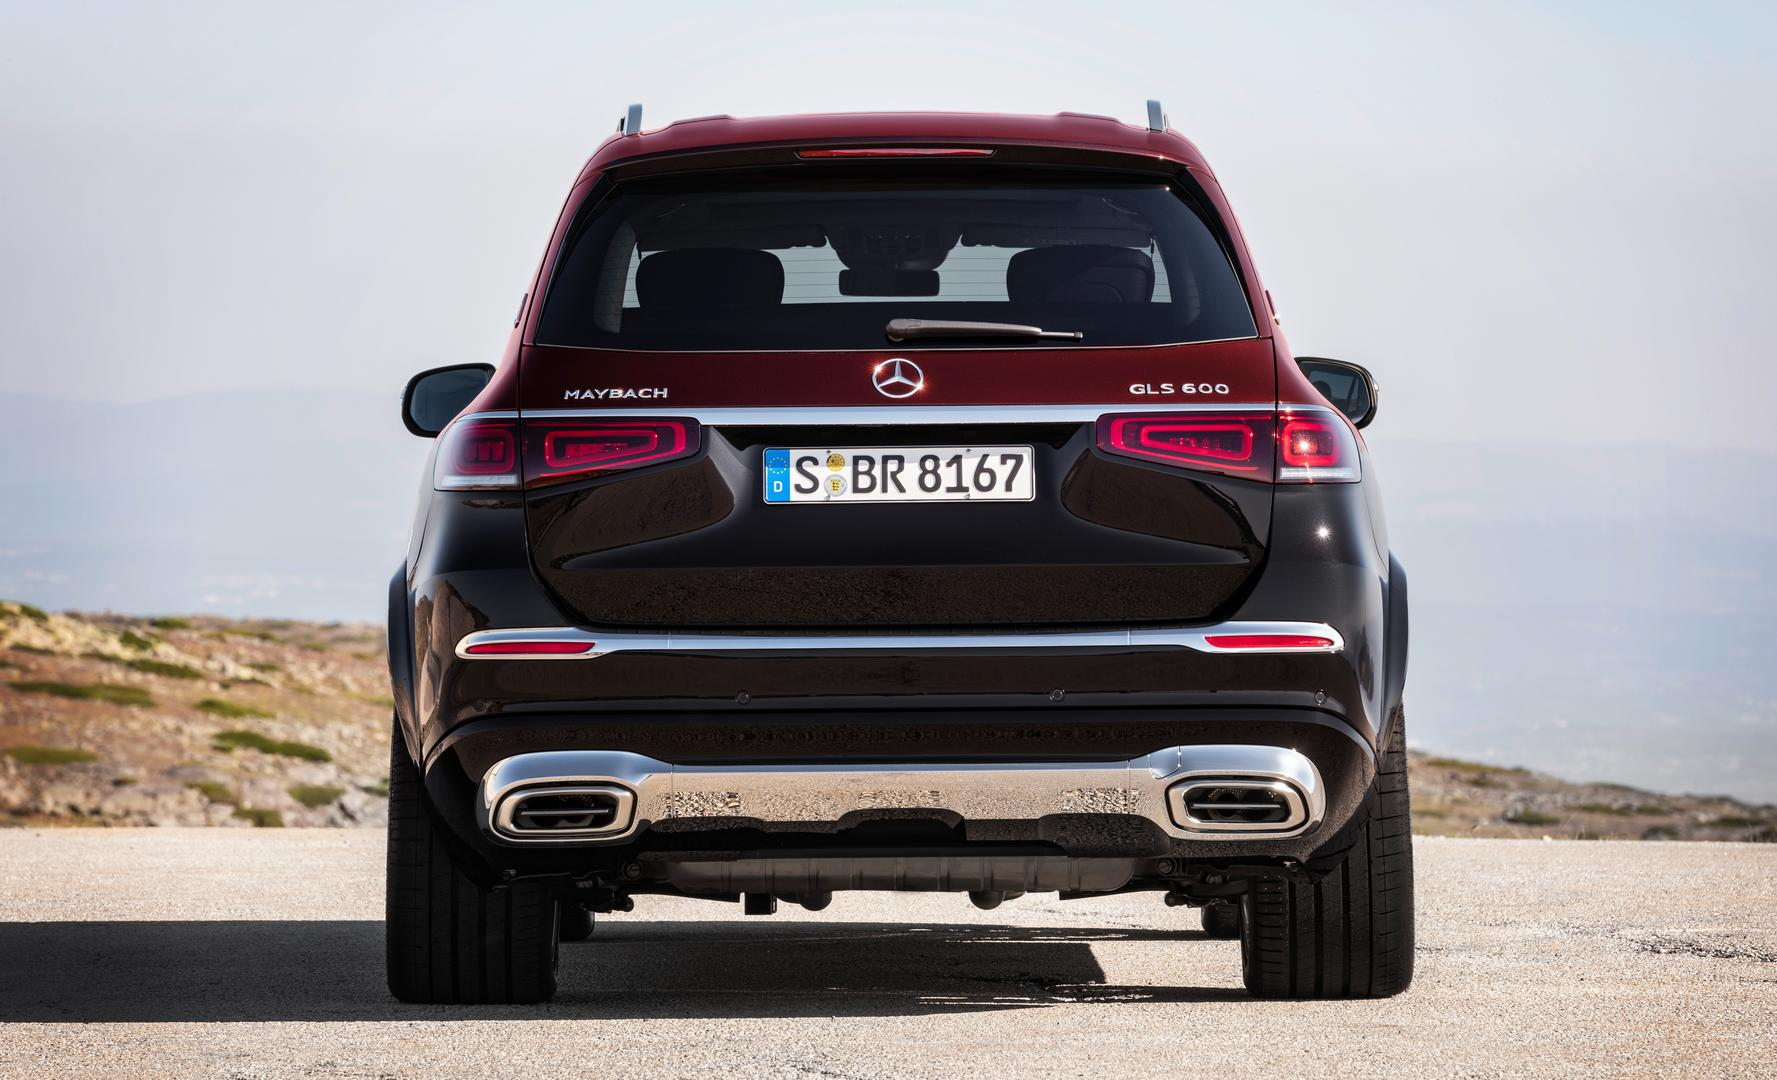 Mercedes-Maybach GLS 600 Rear